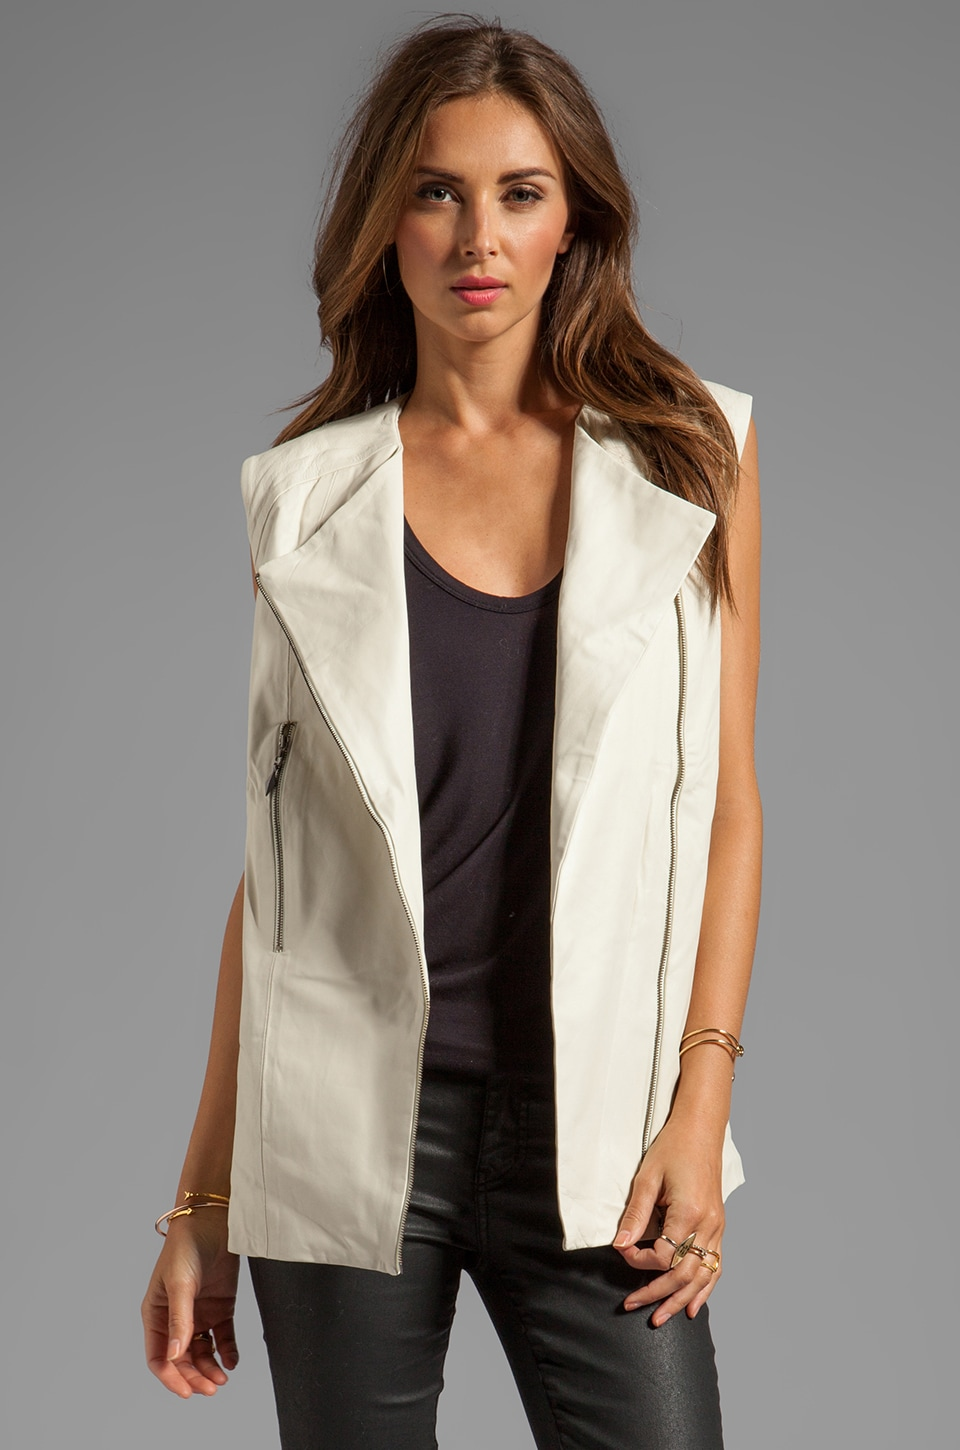 bless'ed are the meek Freedom Leather Vest in Ivory